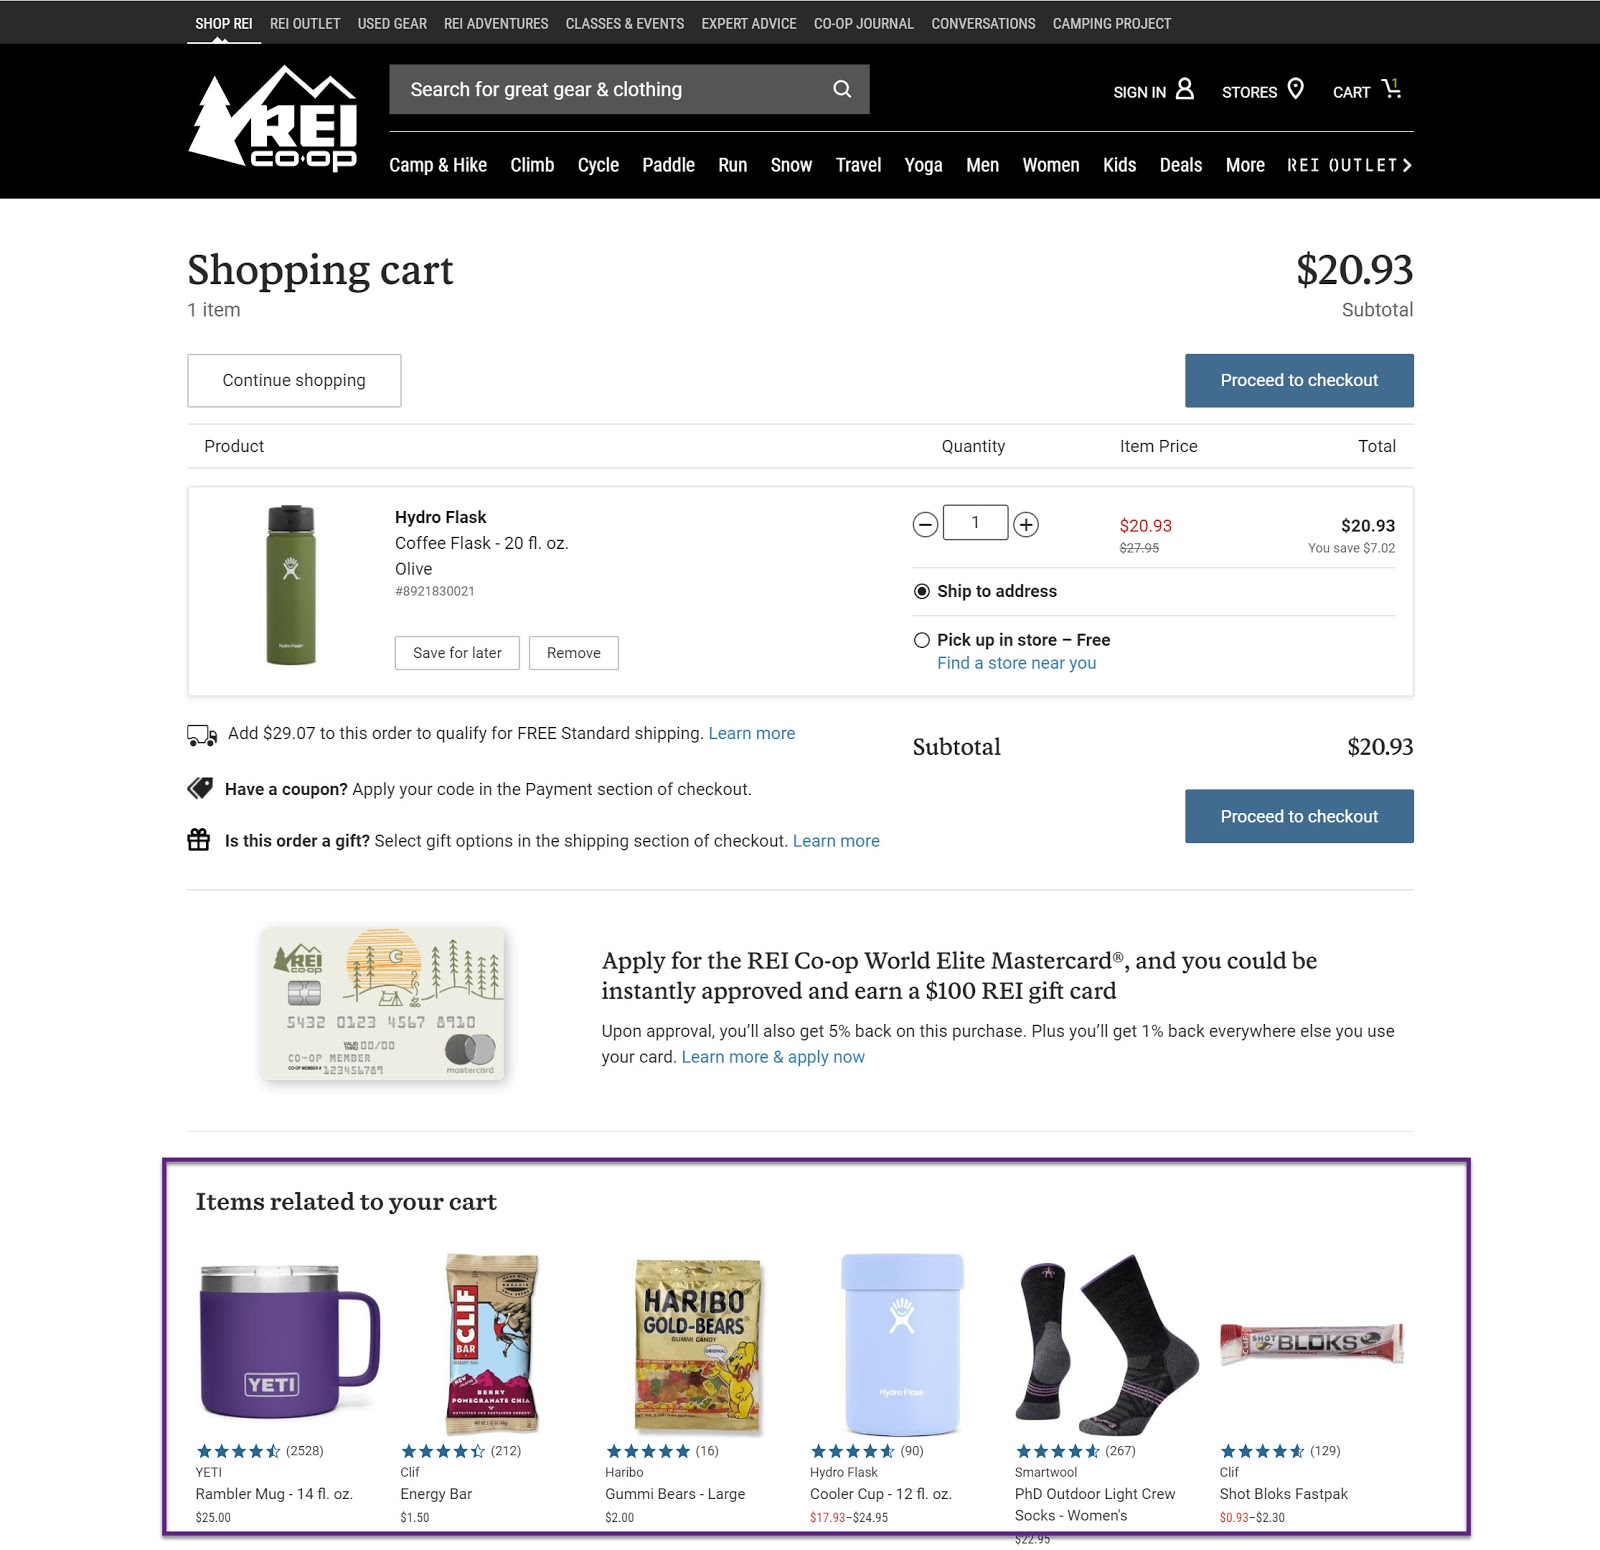 Example of a checkout page on REI's website